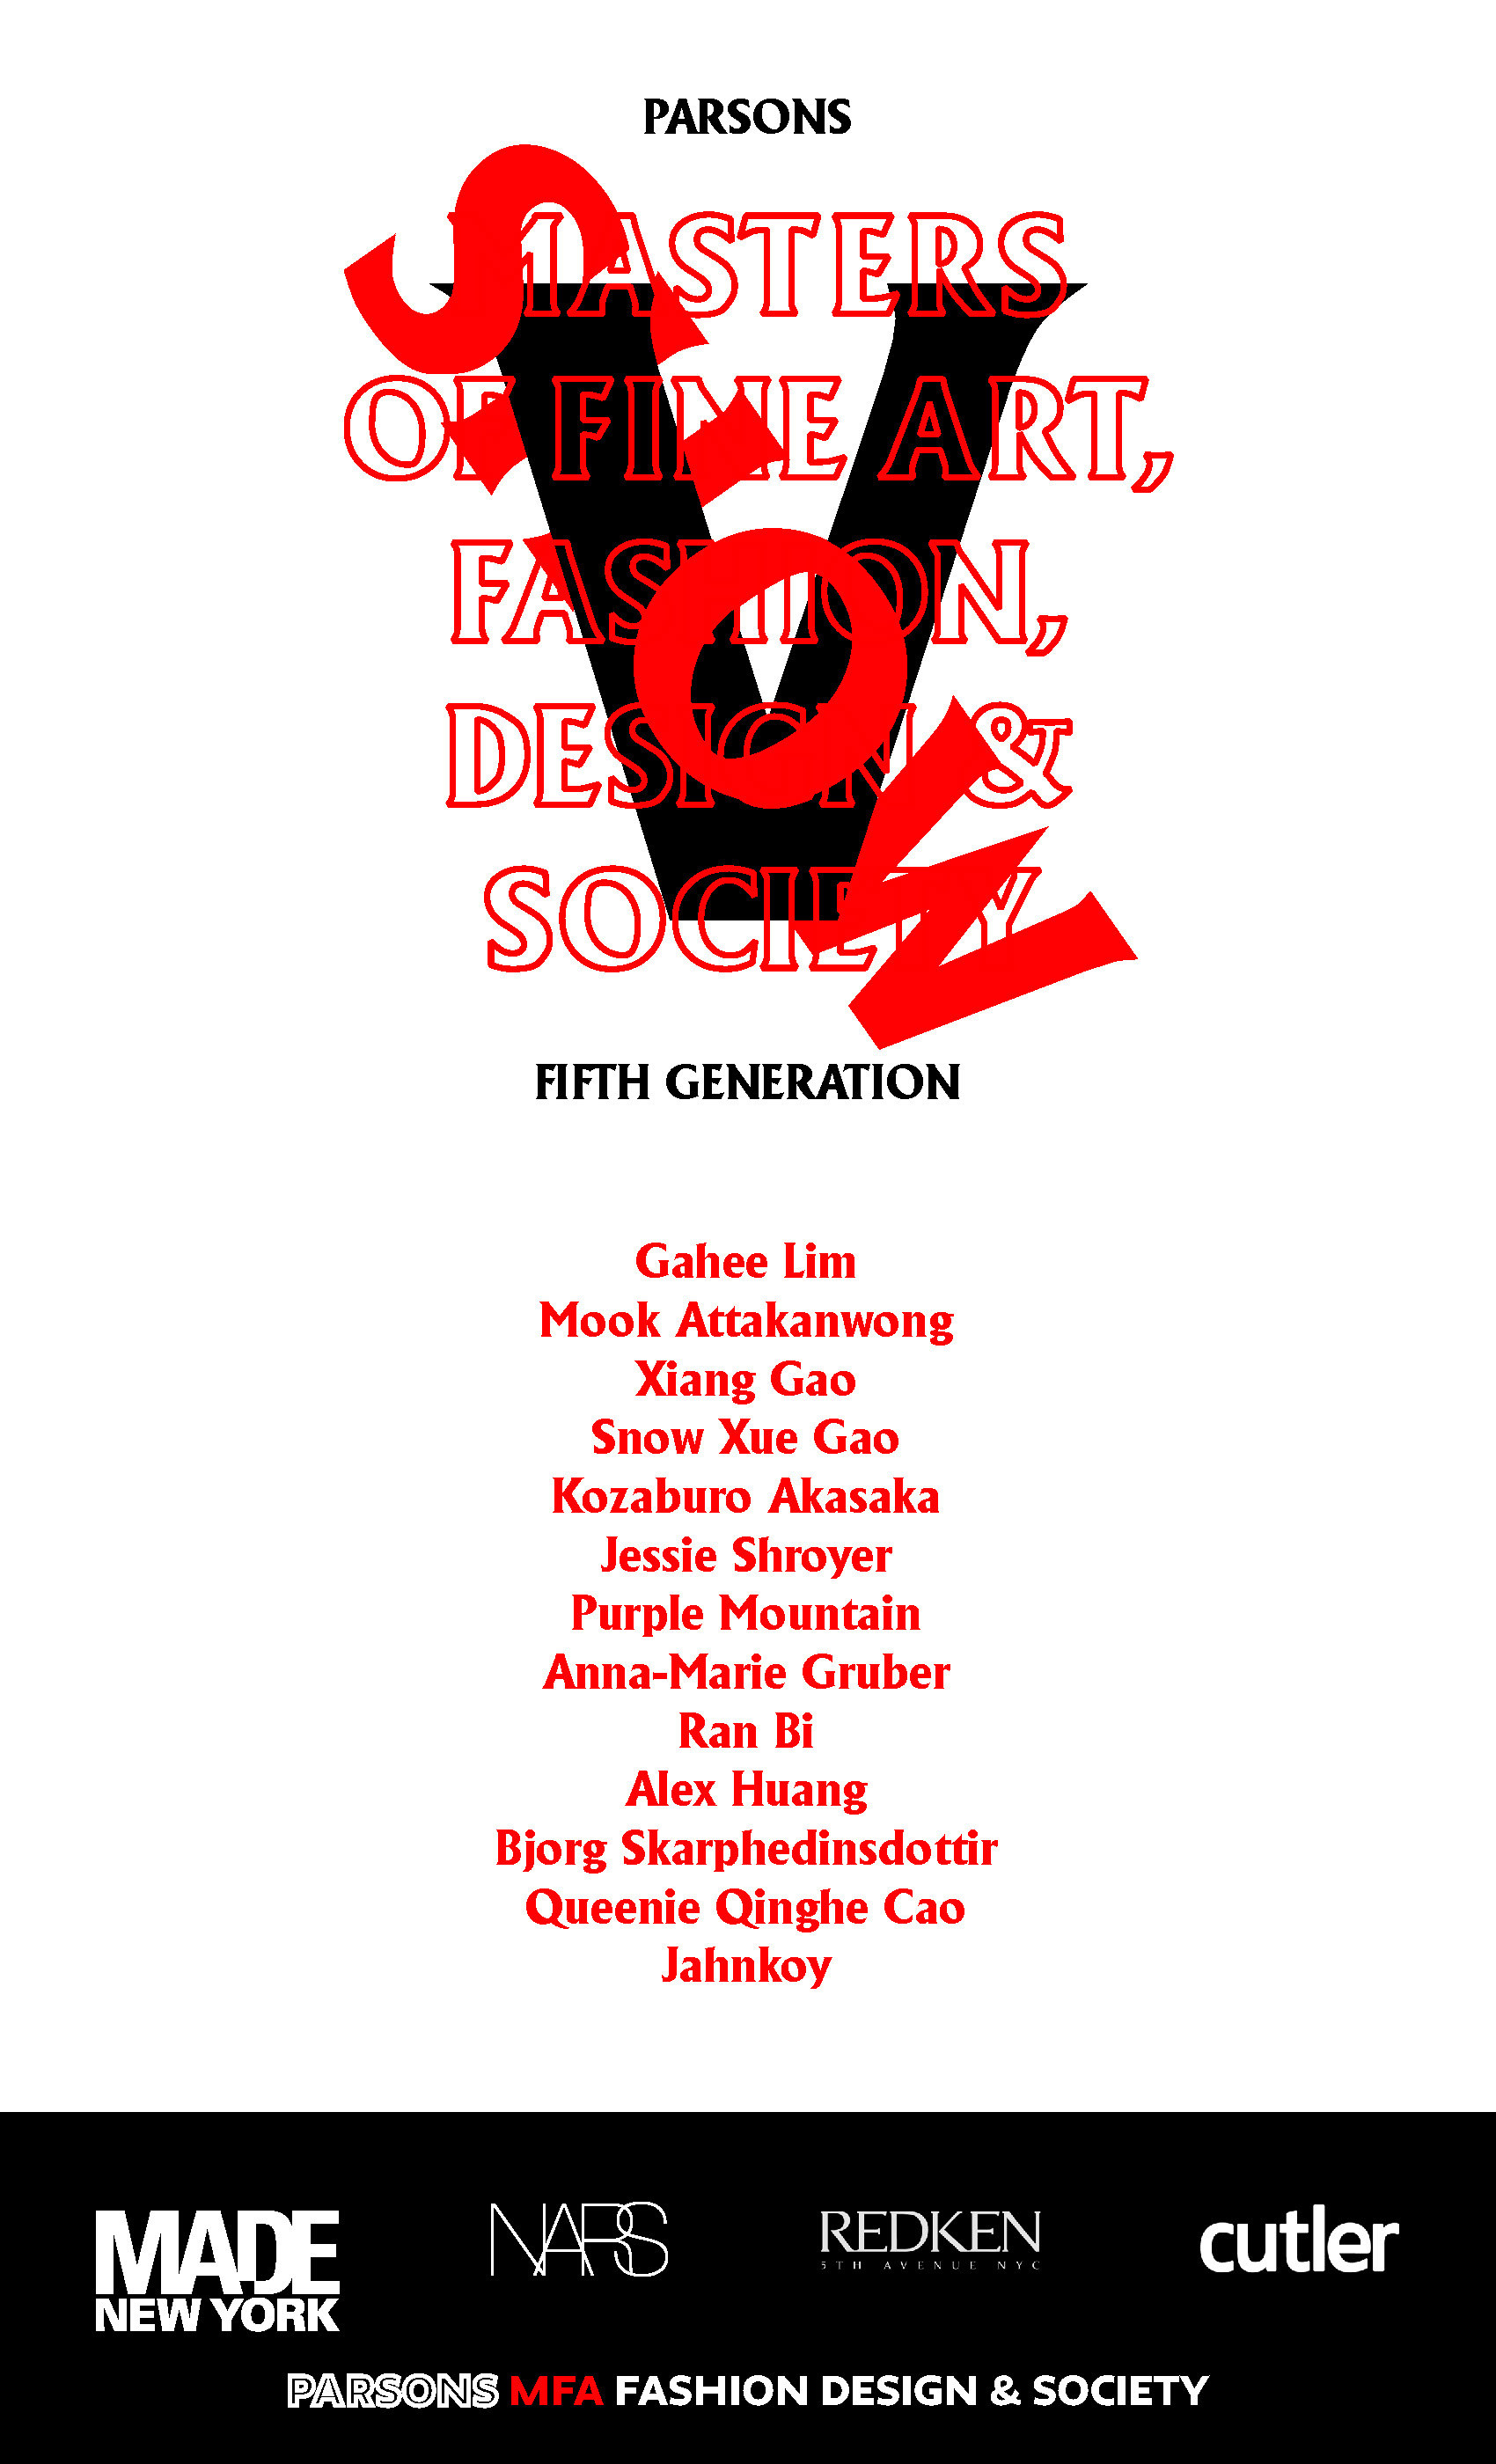 Parsons Mfa Fashion Design Society Presents Generation V On Livestream